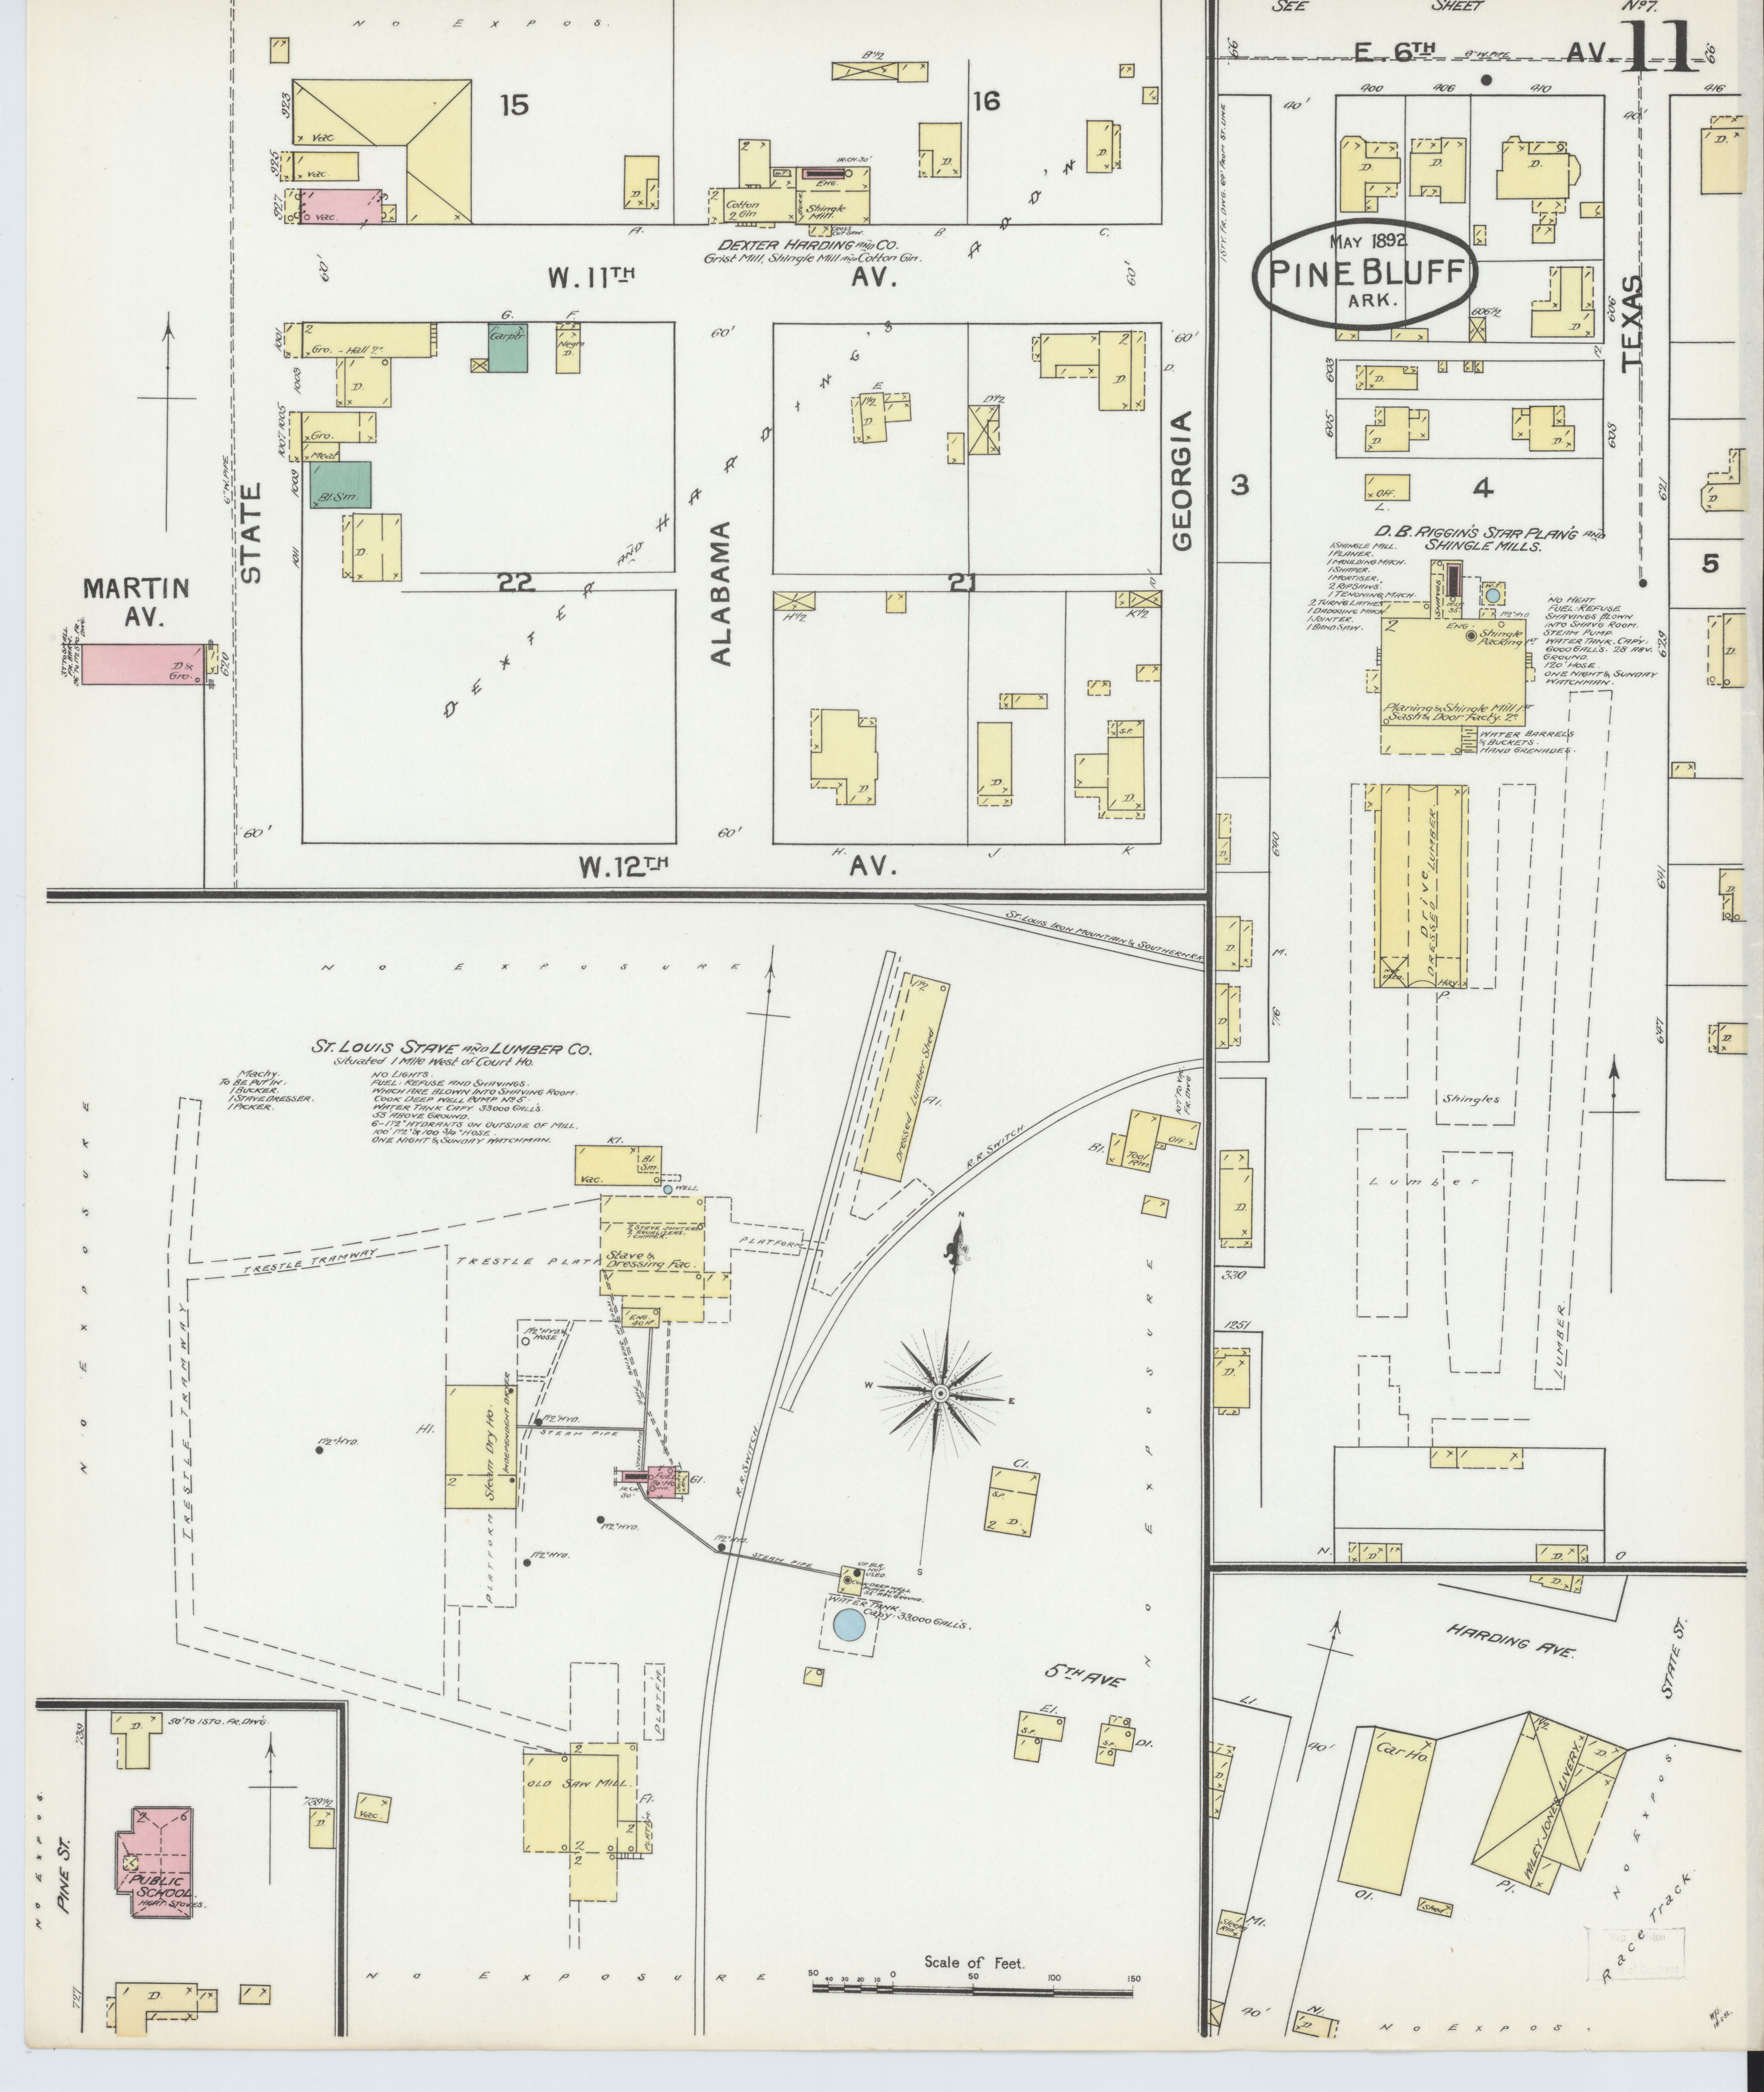 File Sanborn Fire Insurance Map From Pine Bluff Jefferson County